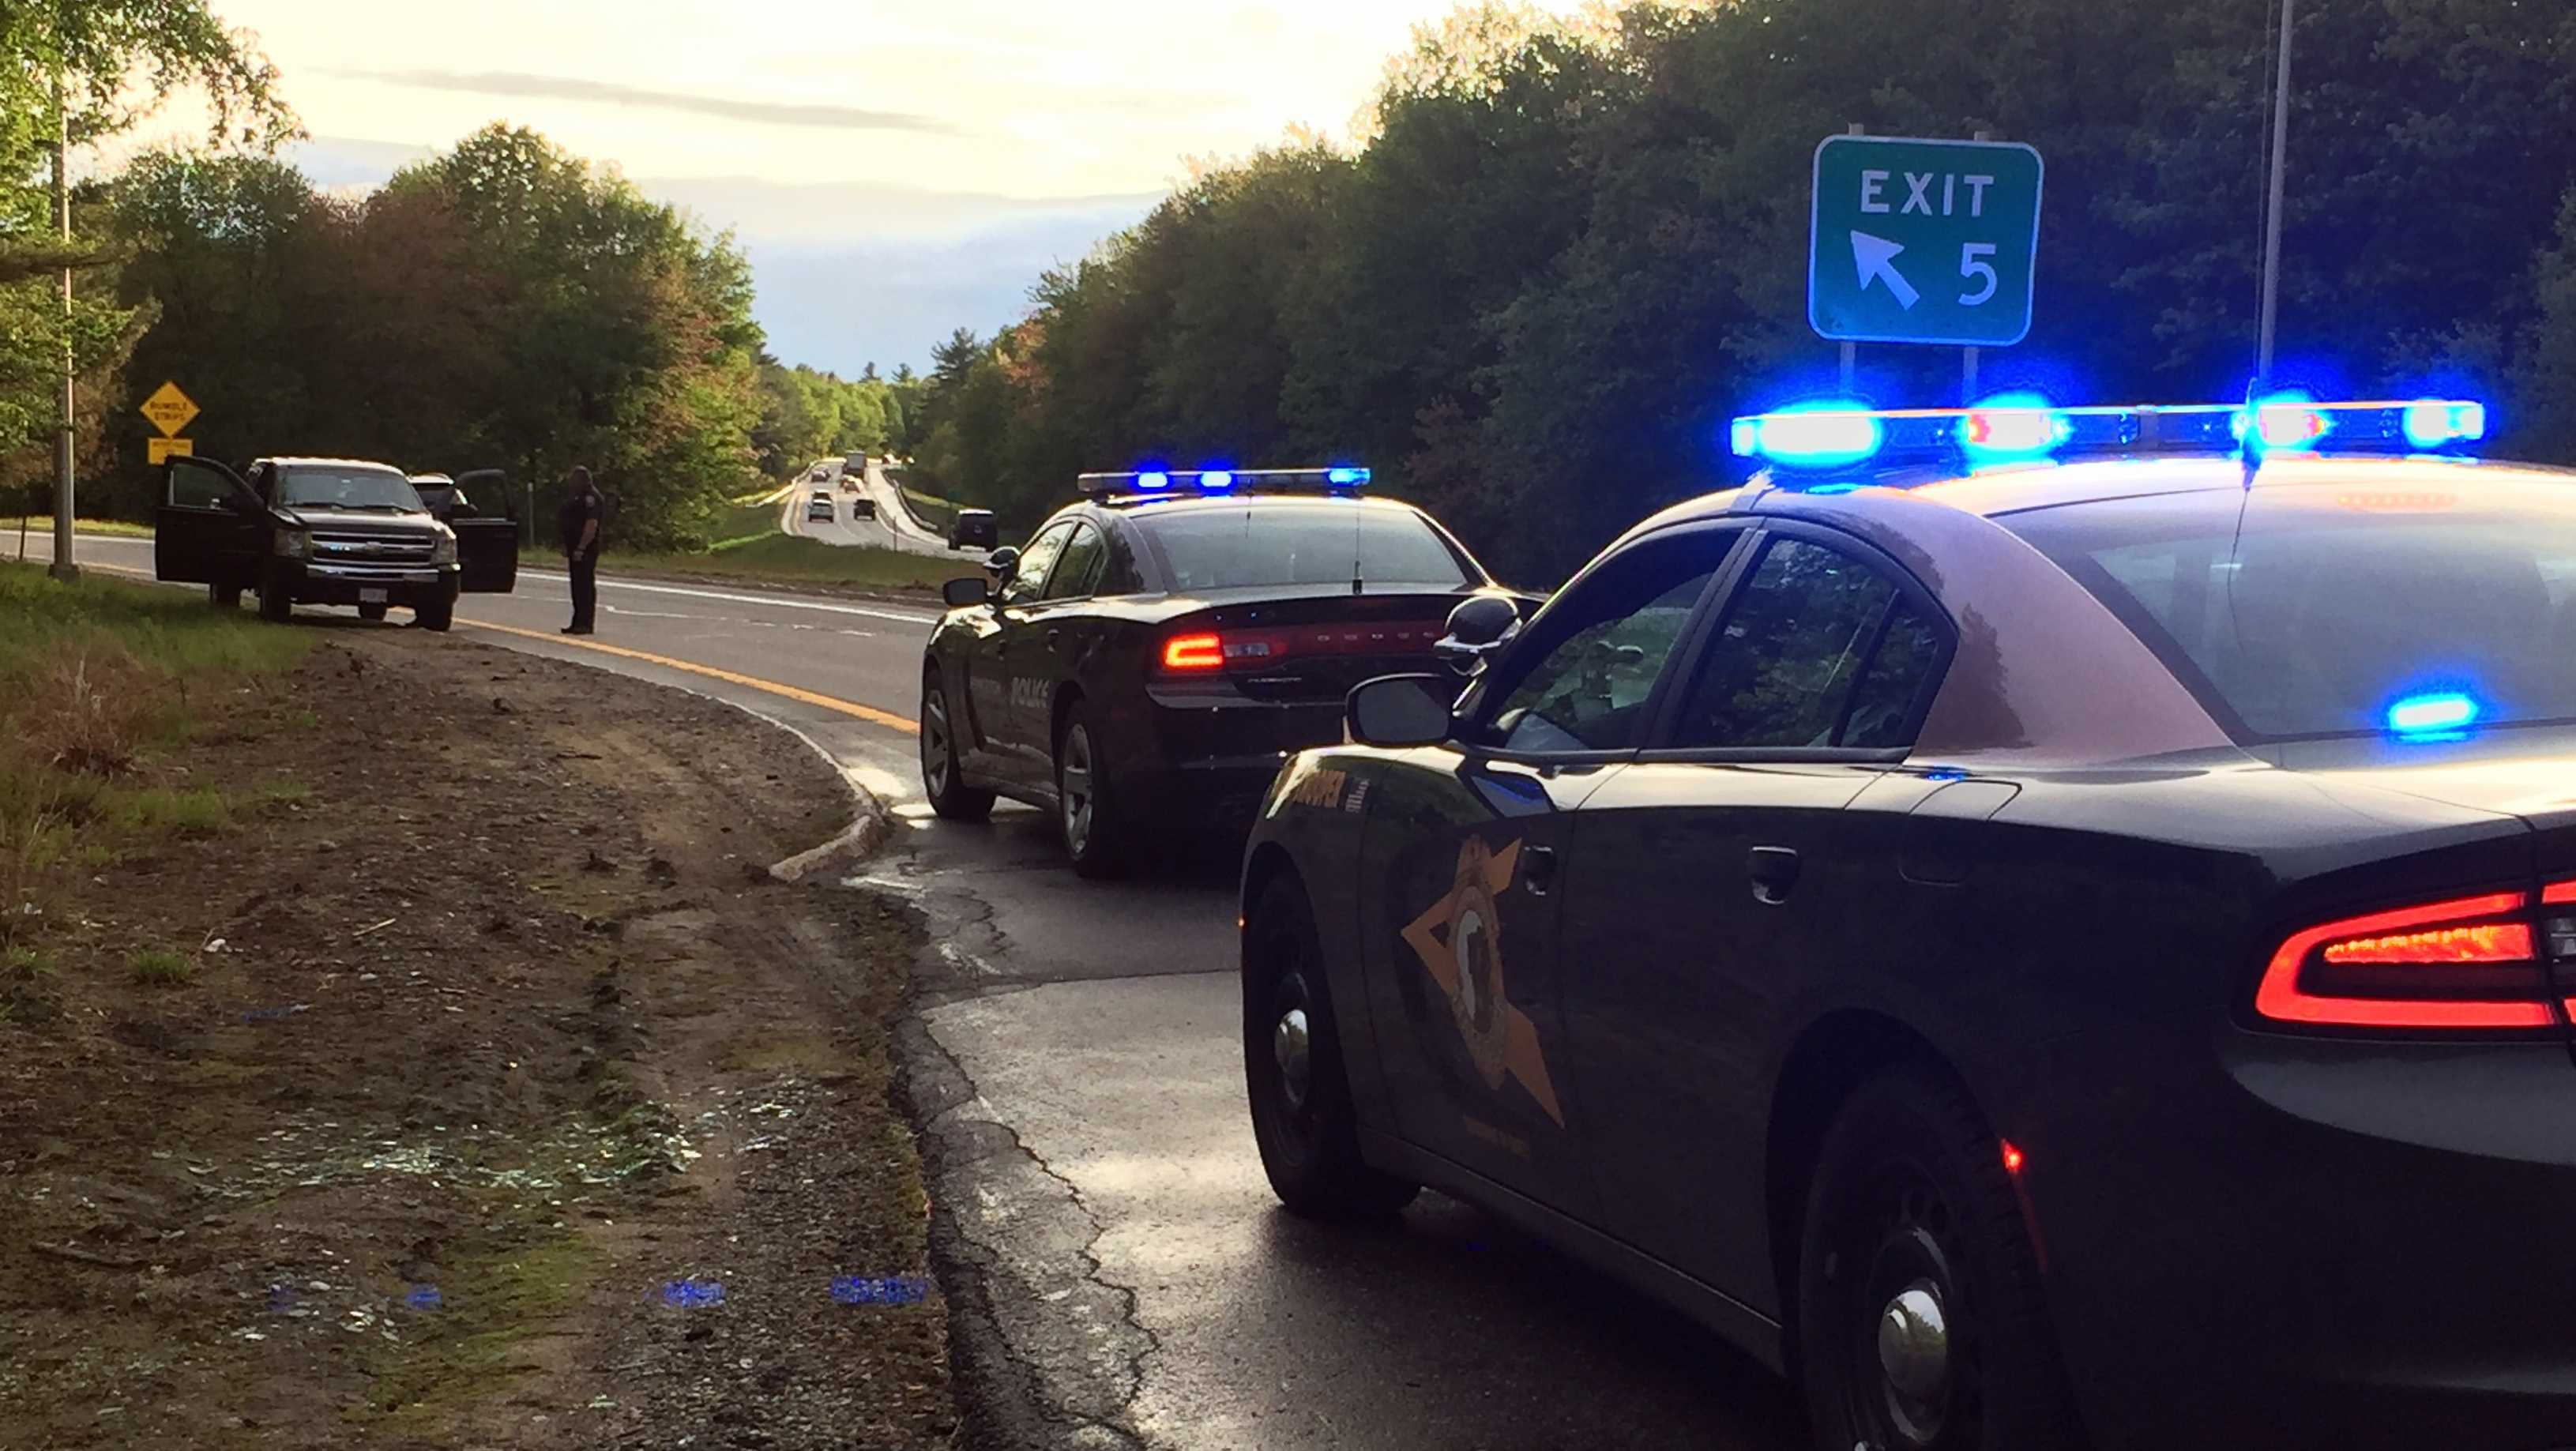 Lakeville man arrested after driving wrong way on I-89 in NH